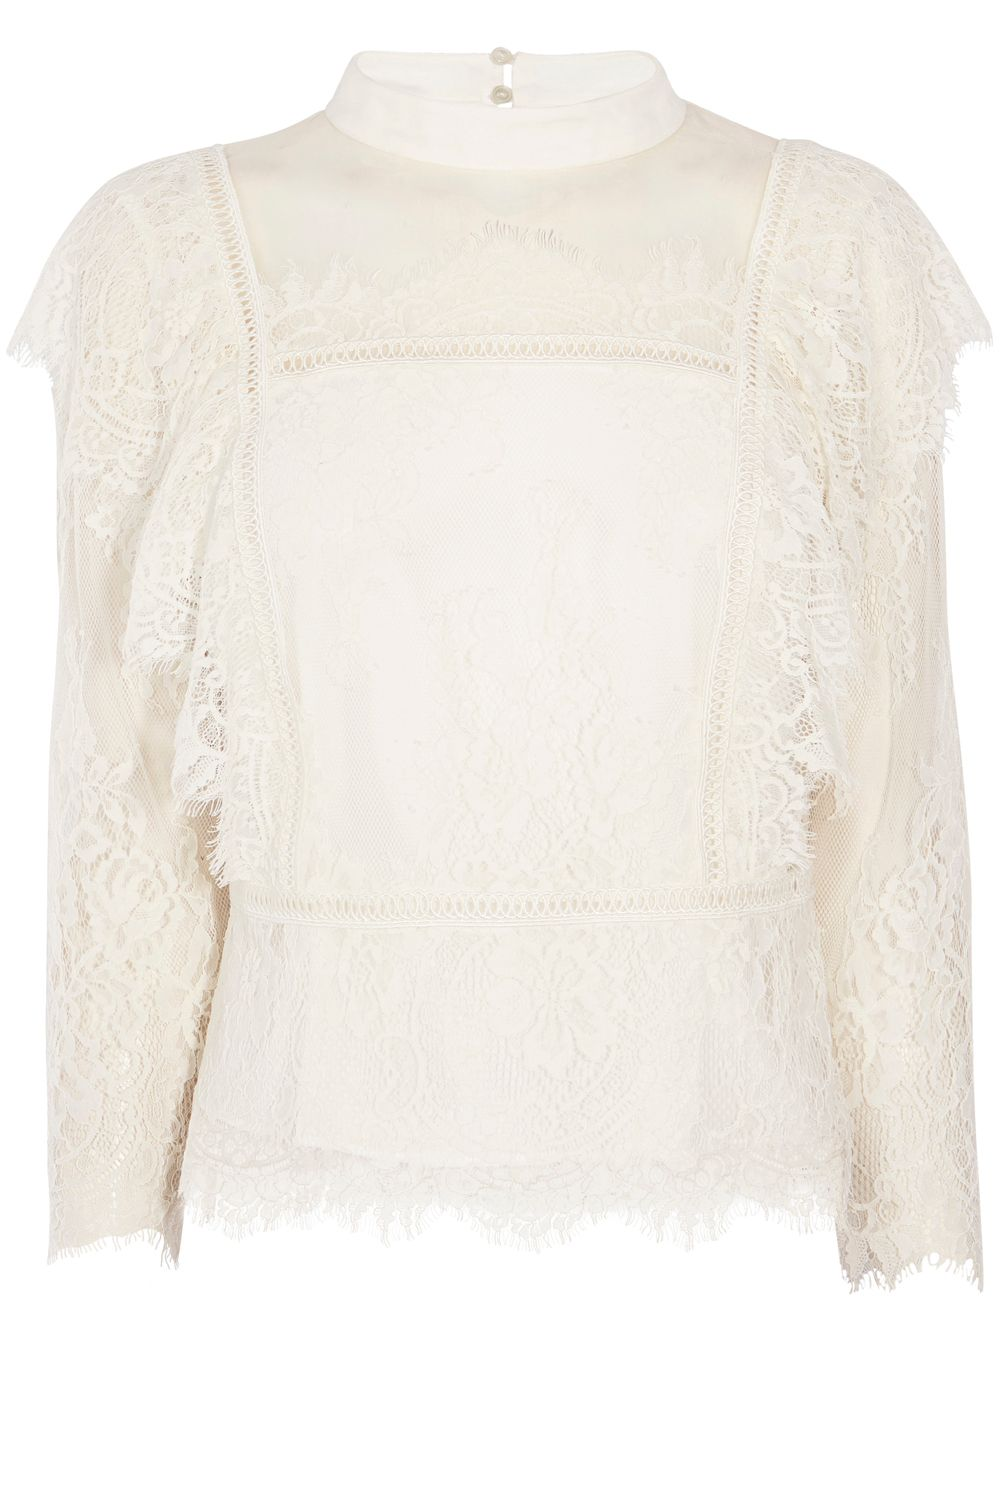 Make an Easy Victorian Costume Dress with a Skirt and Blouse Coast Victoriana Lace Blouse White £79.00 AT vintagedancer.com